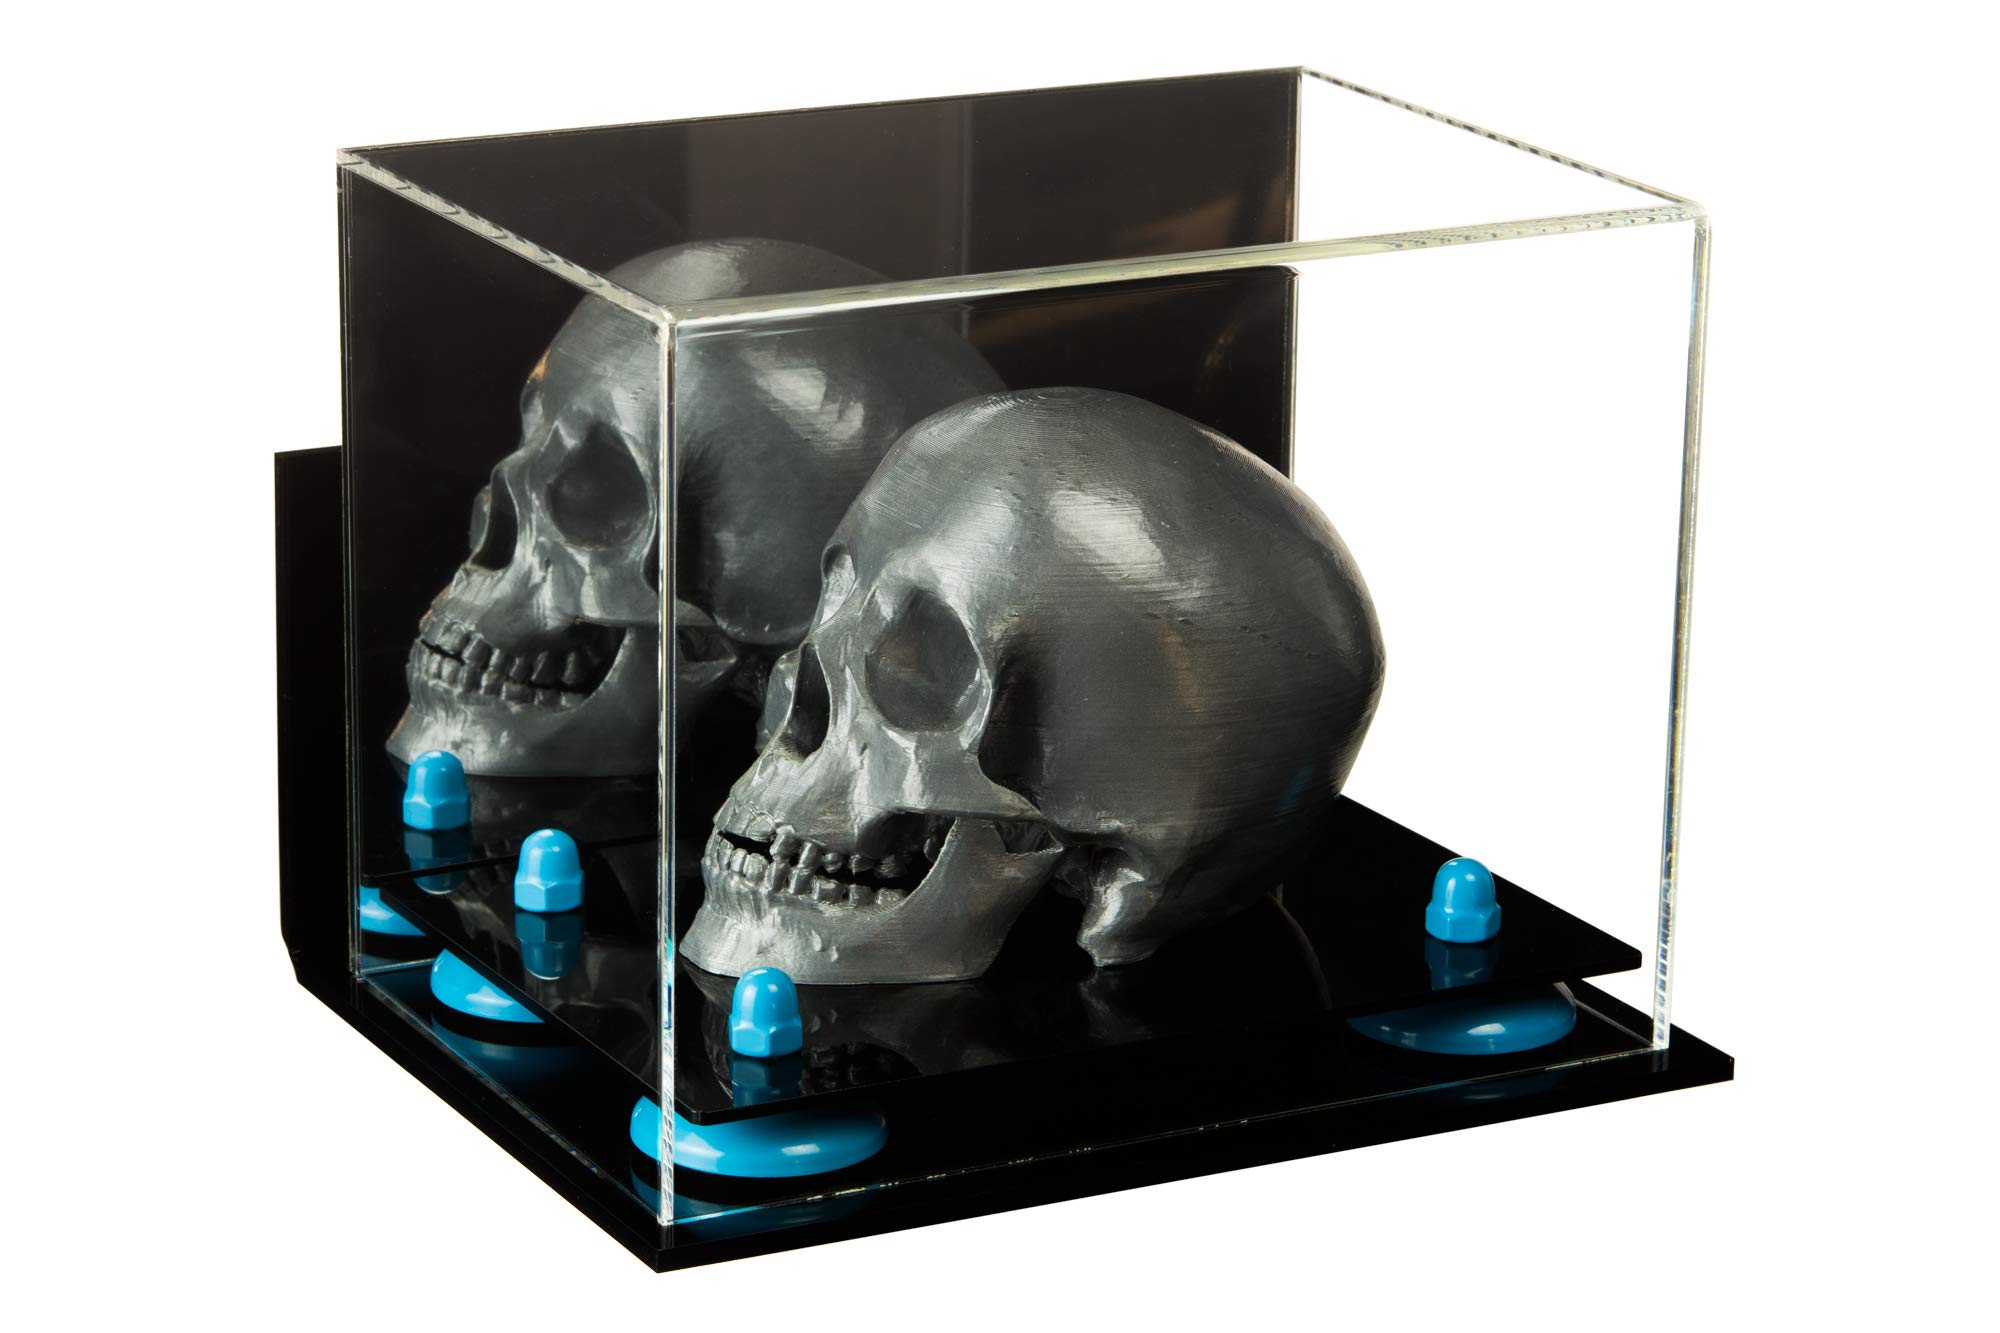 Versatile Deluxe Acrylic Display Case - Small Rectangle Box with Mirror, Wall Mount and Blue Risers 8.25'' x 5.5'' x 6'' (A003-BLR)